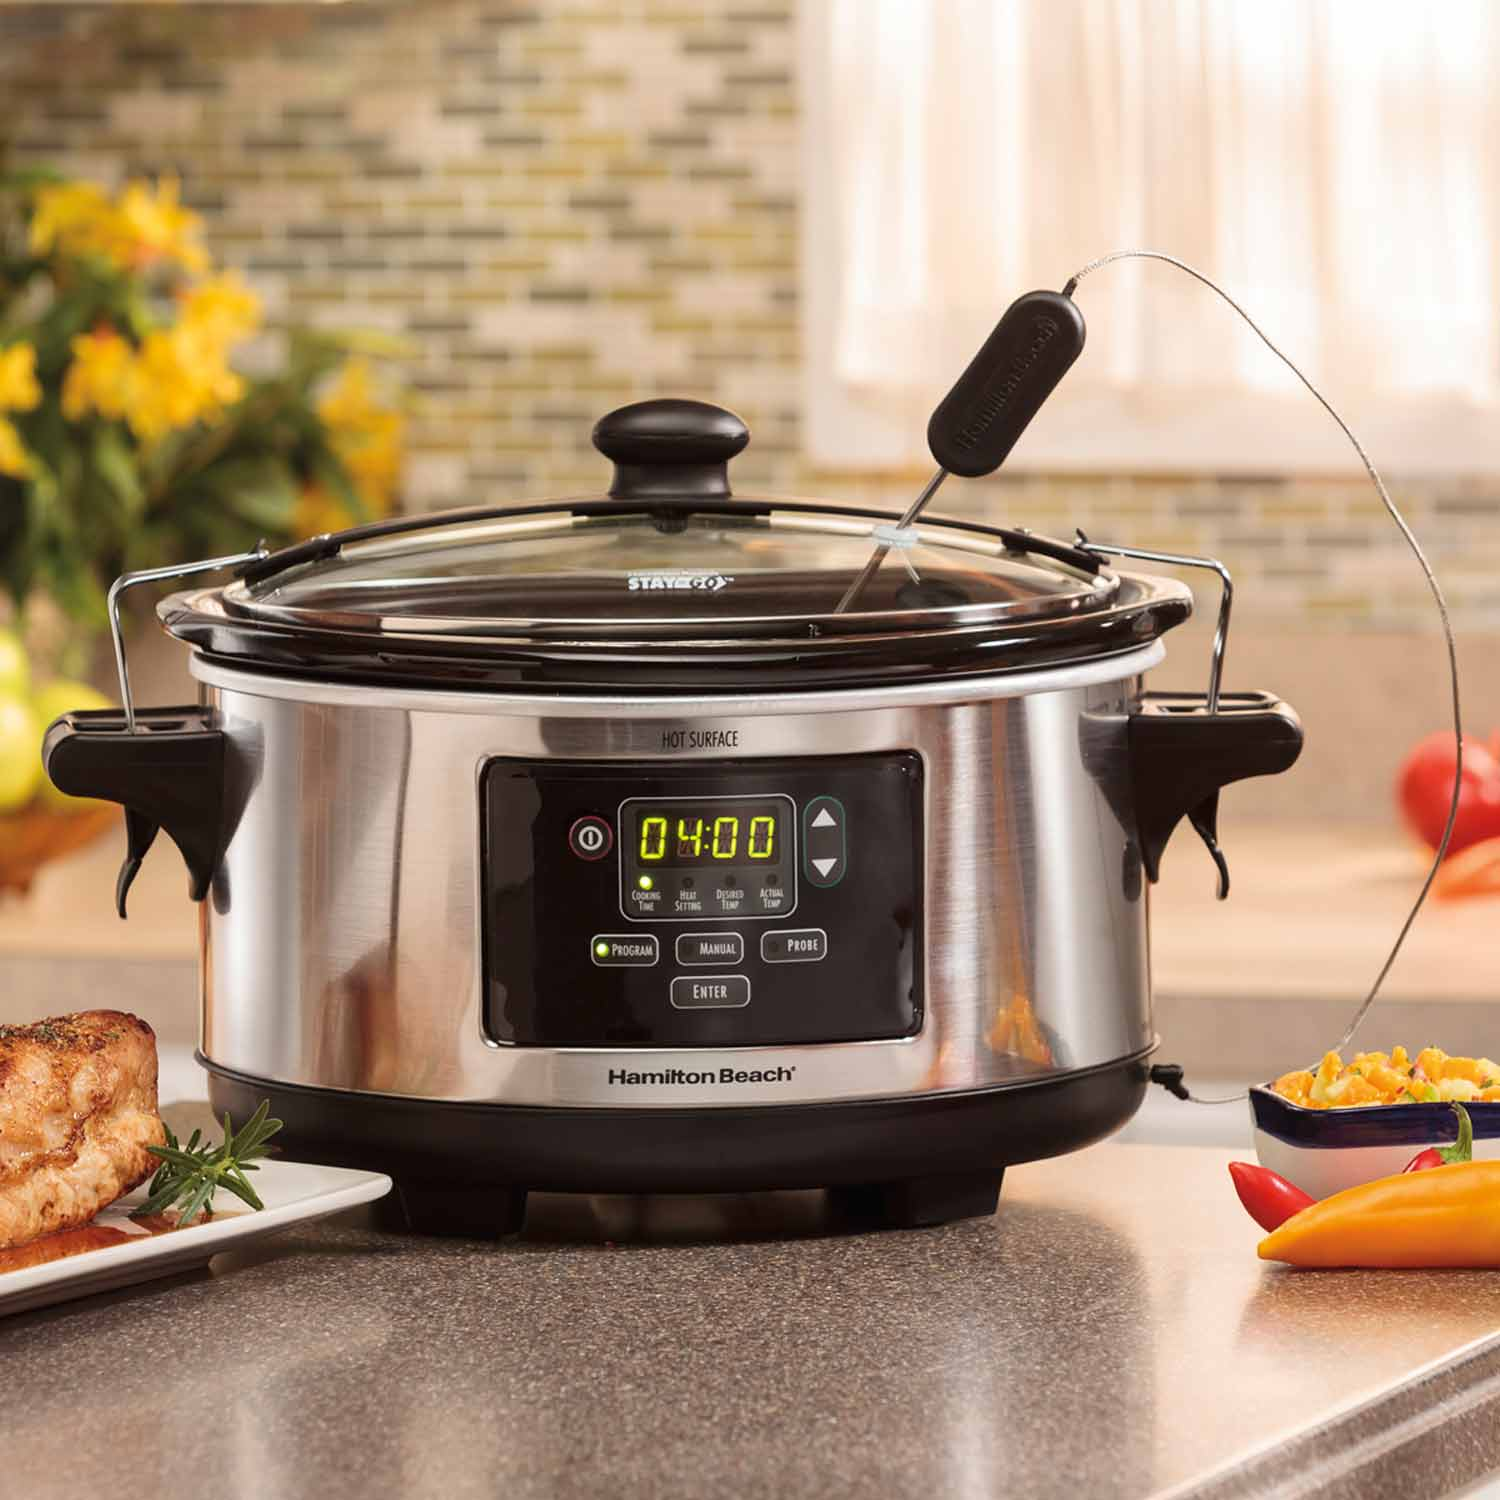 Is it safe to leave slow cookers unattended? Yes!